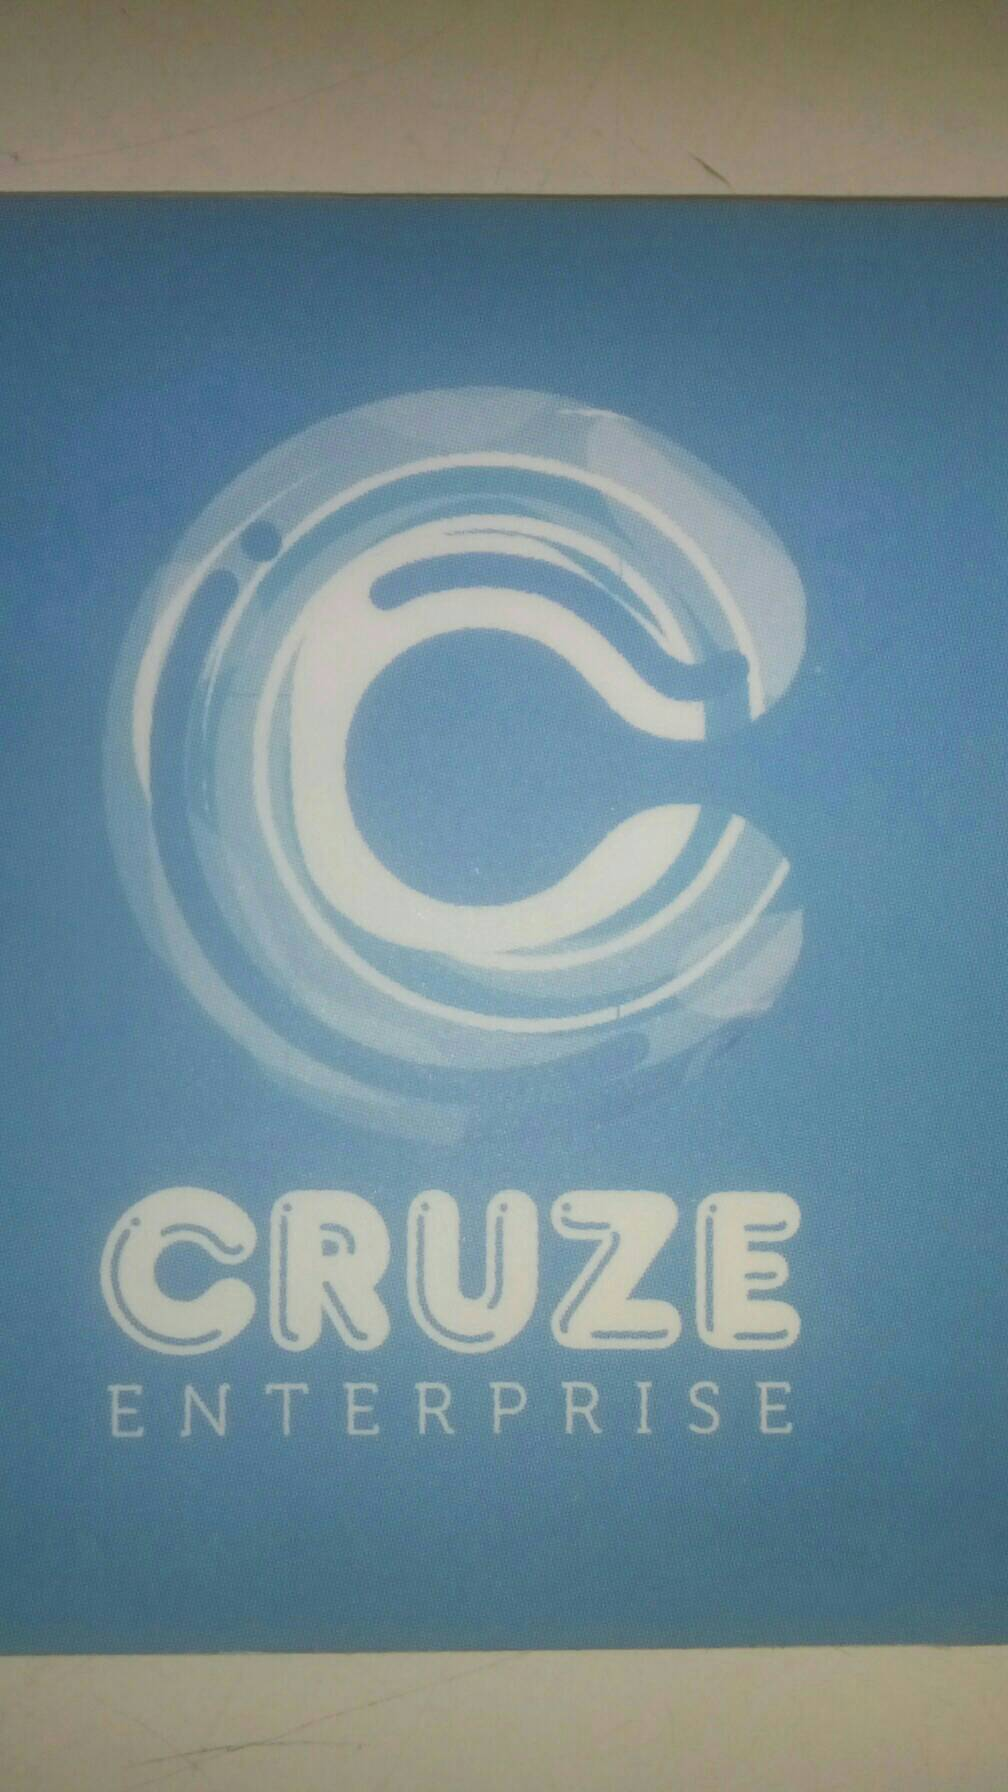 Cruze Enterprise - logo